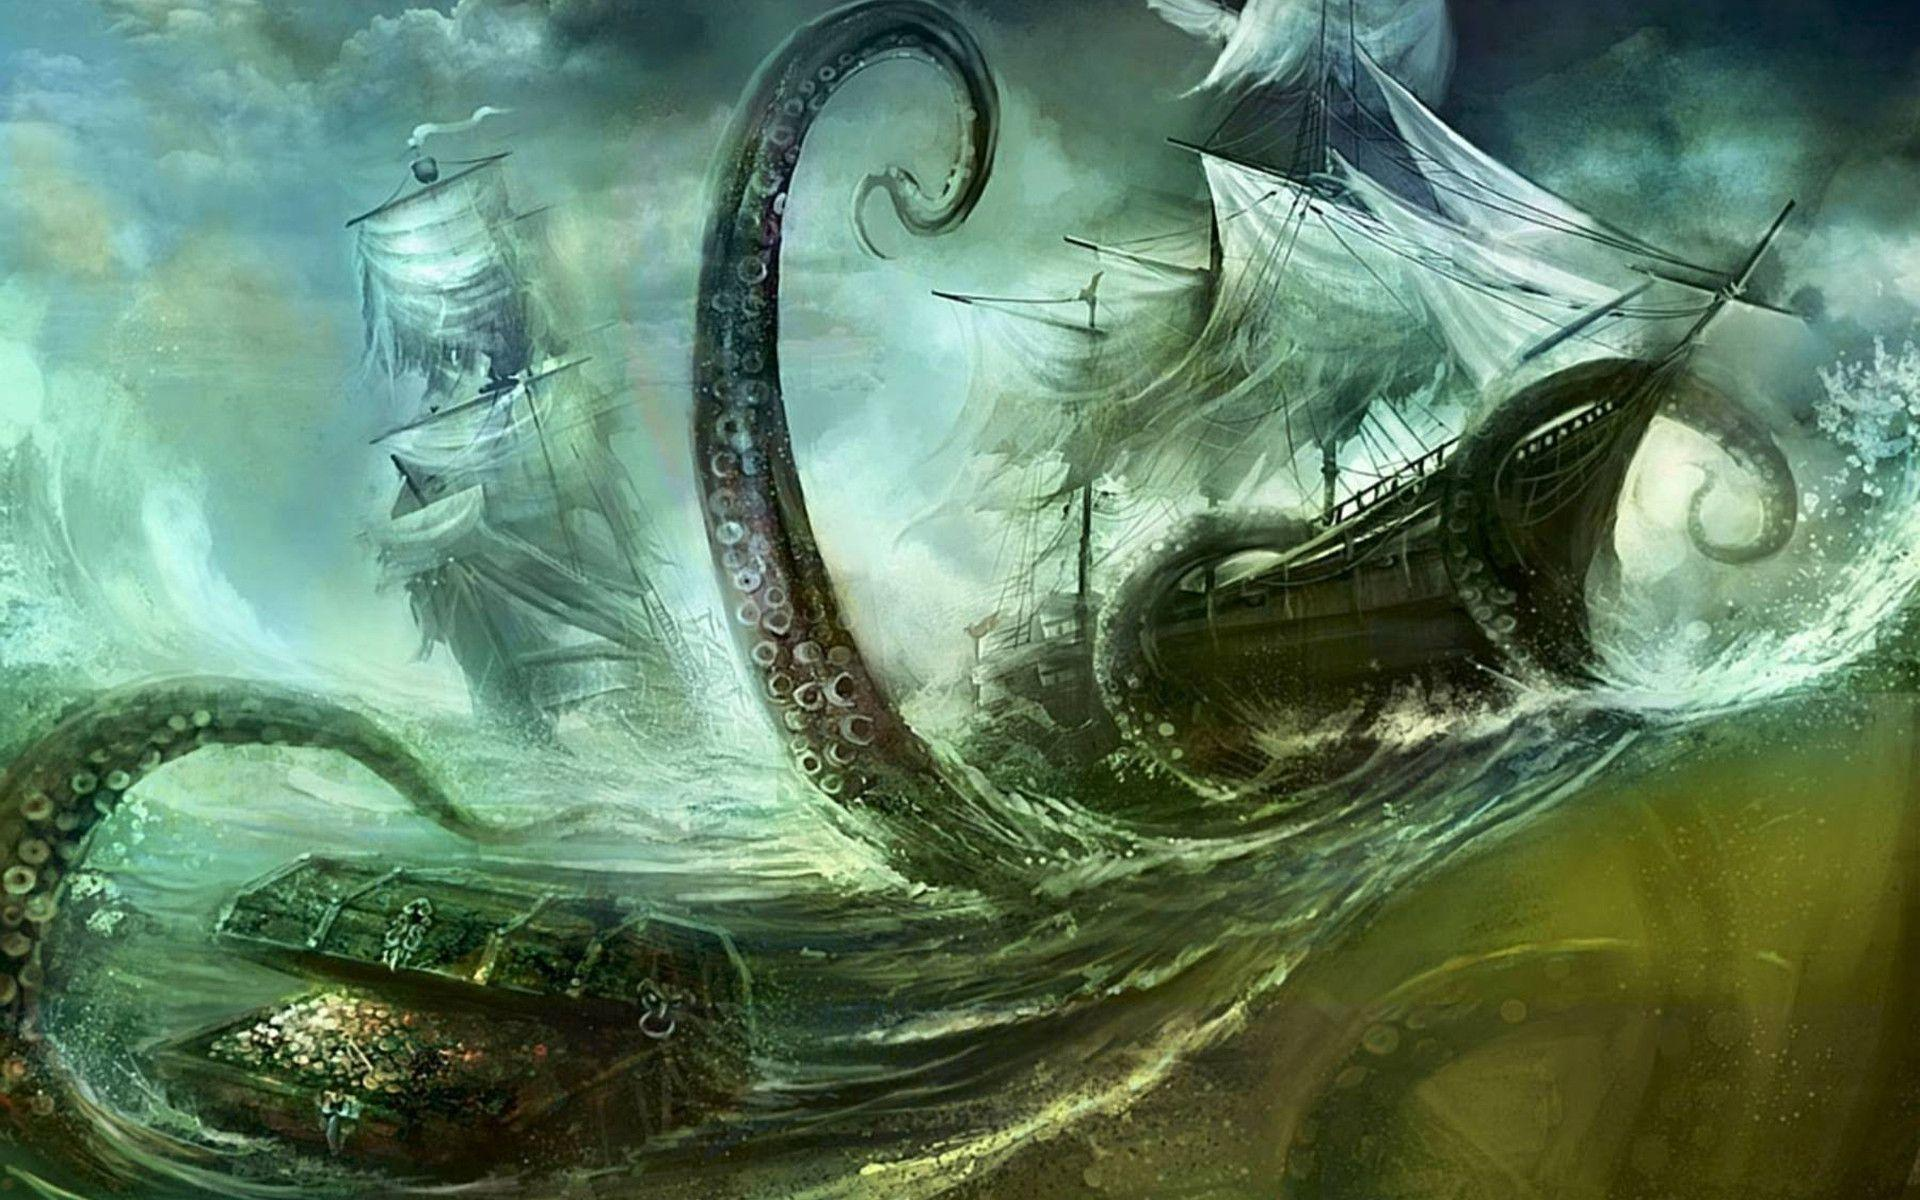 the return of kracken The latest tweets from kraken support please see our blog post for important details about the upgrade and return of trading https:// blogkrakencom/post/1449.